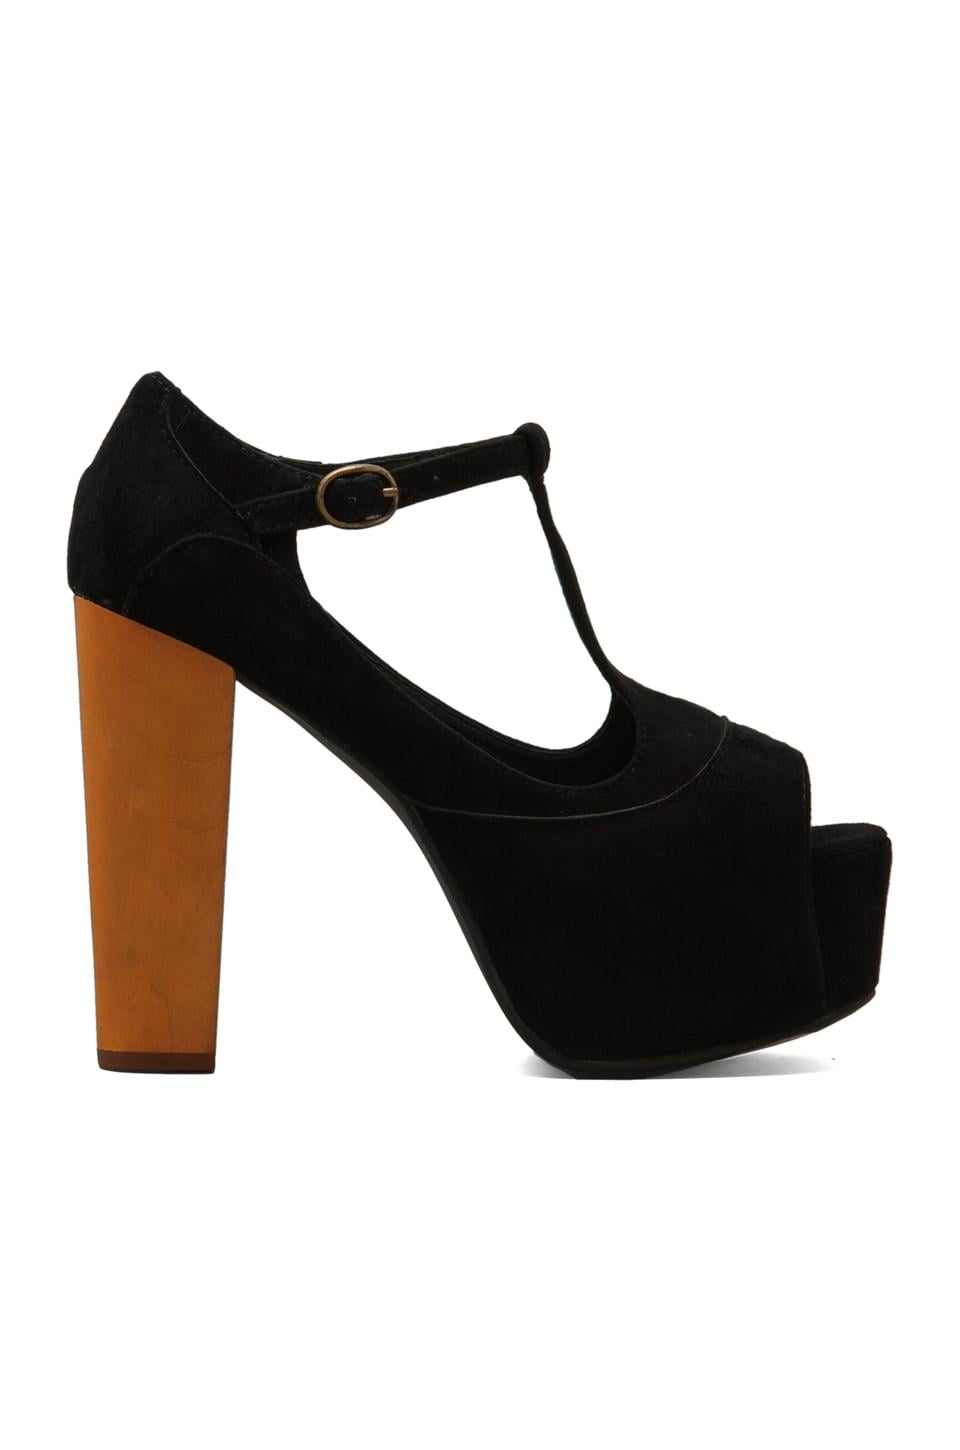 Jeffrey Campbell Foxy Platform w/ Wood Heel in Black Suede